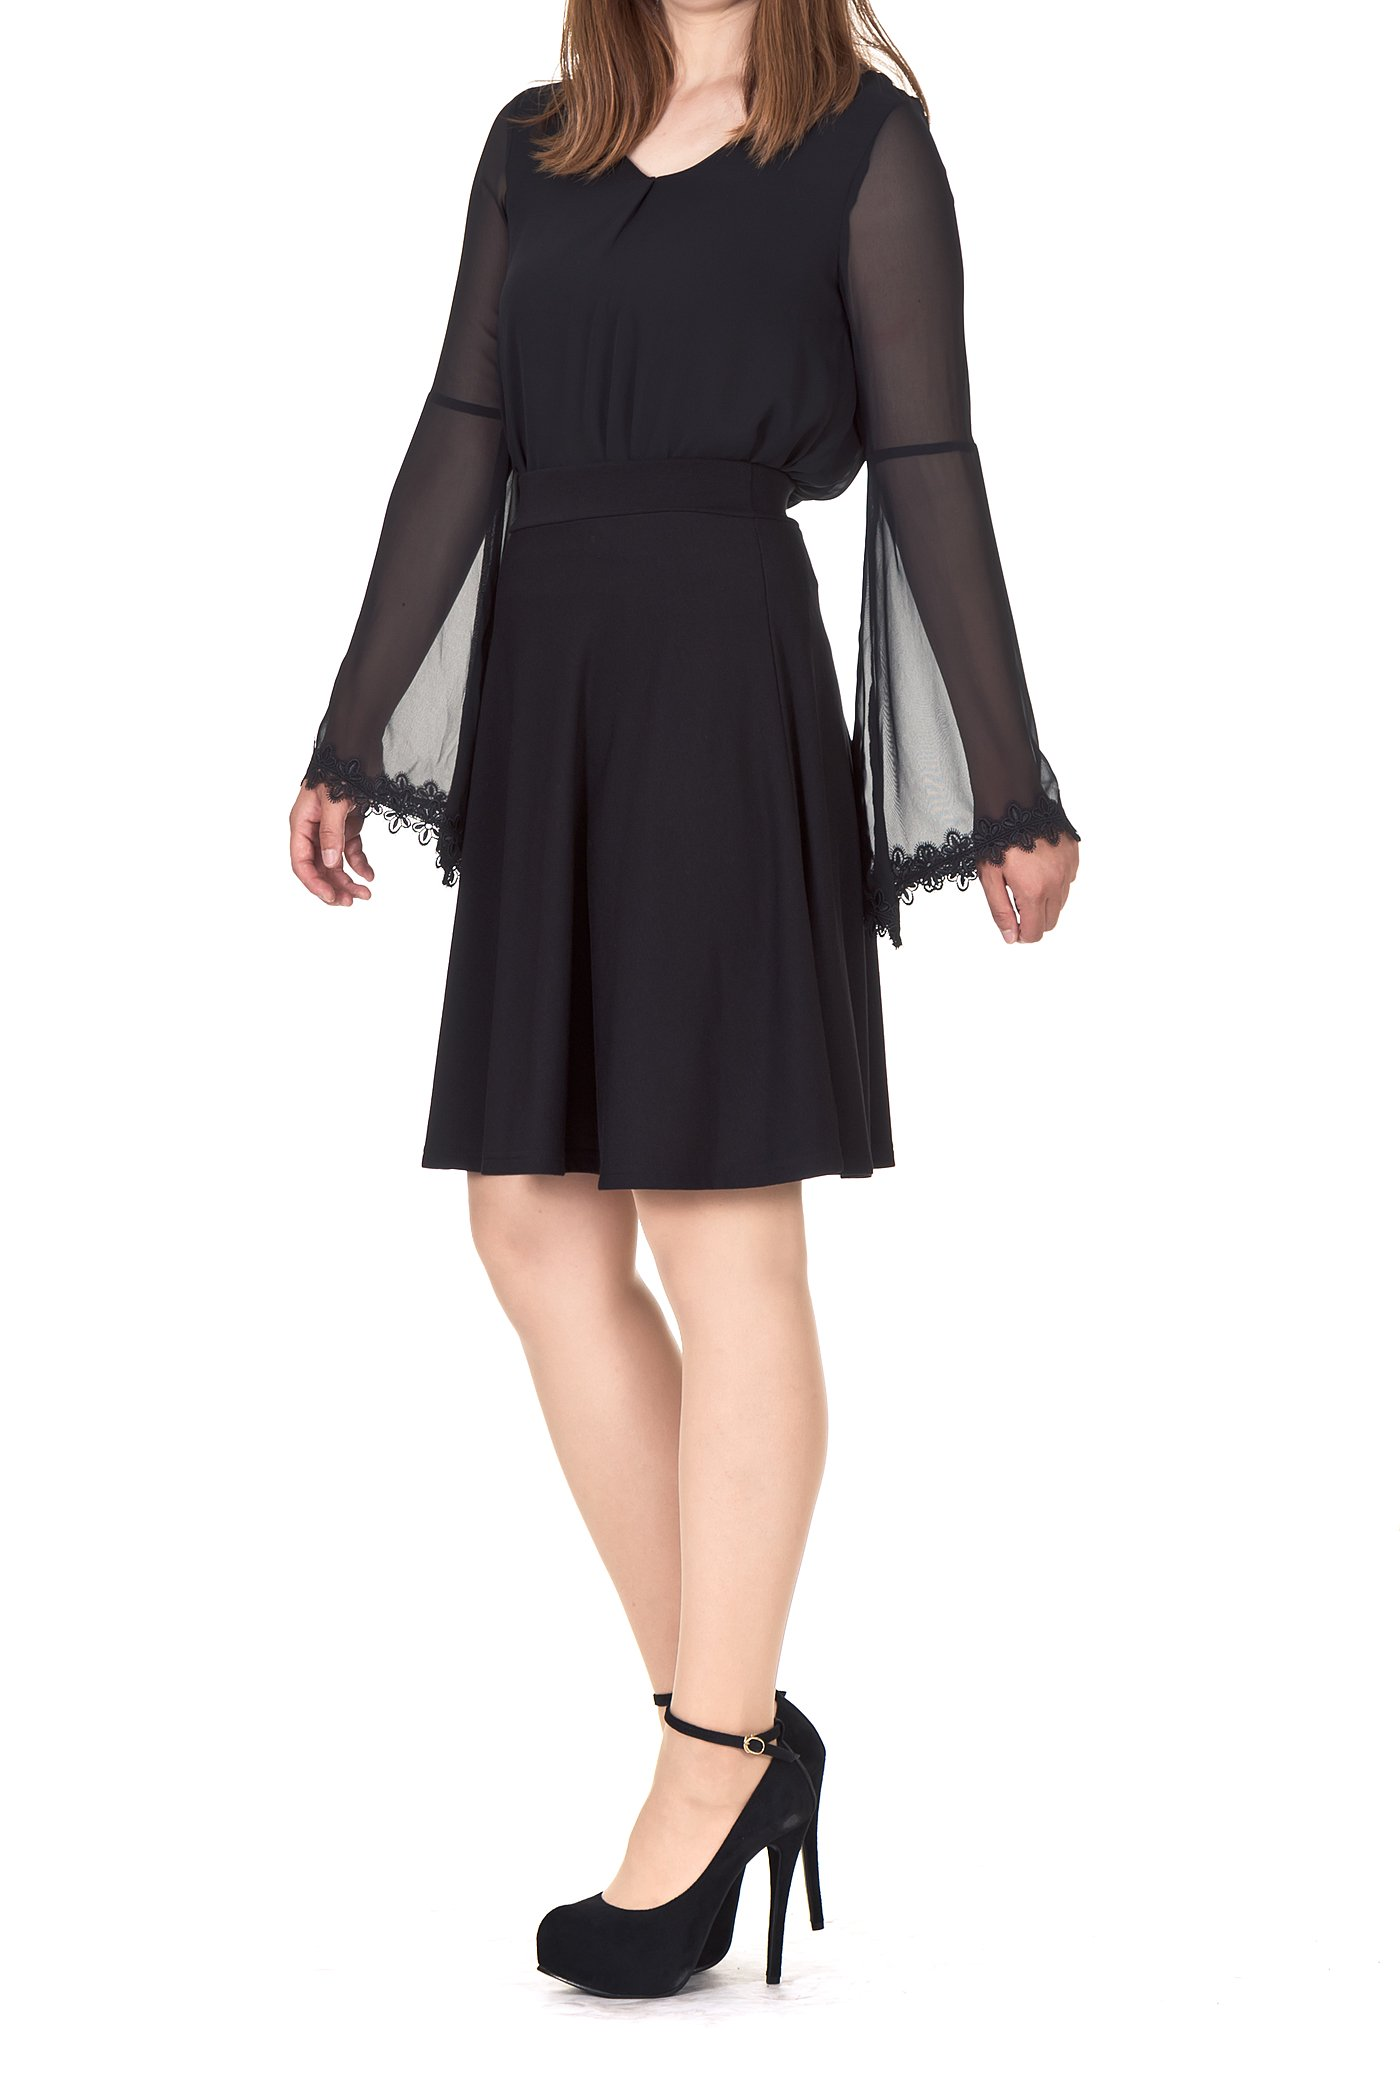 Simple Stretch A-line Flared Knee Length Skirt (XL, Knee Black) by Dani's Choice (Image #4)